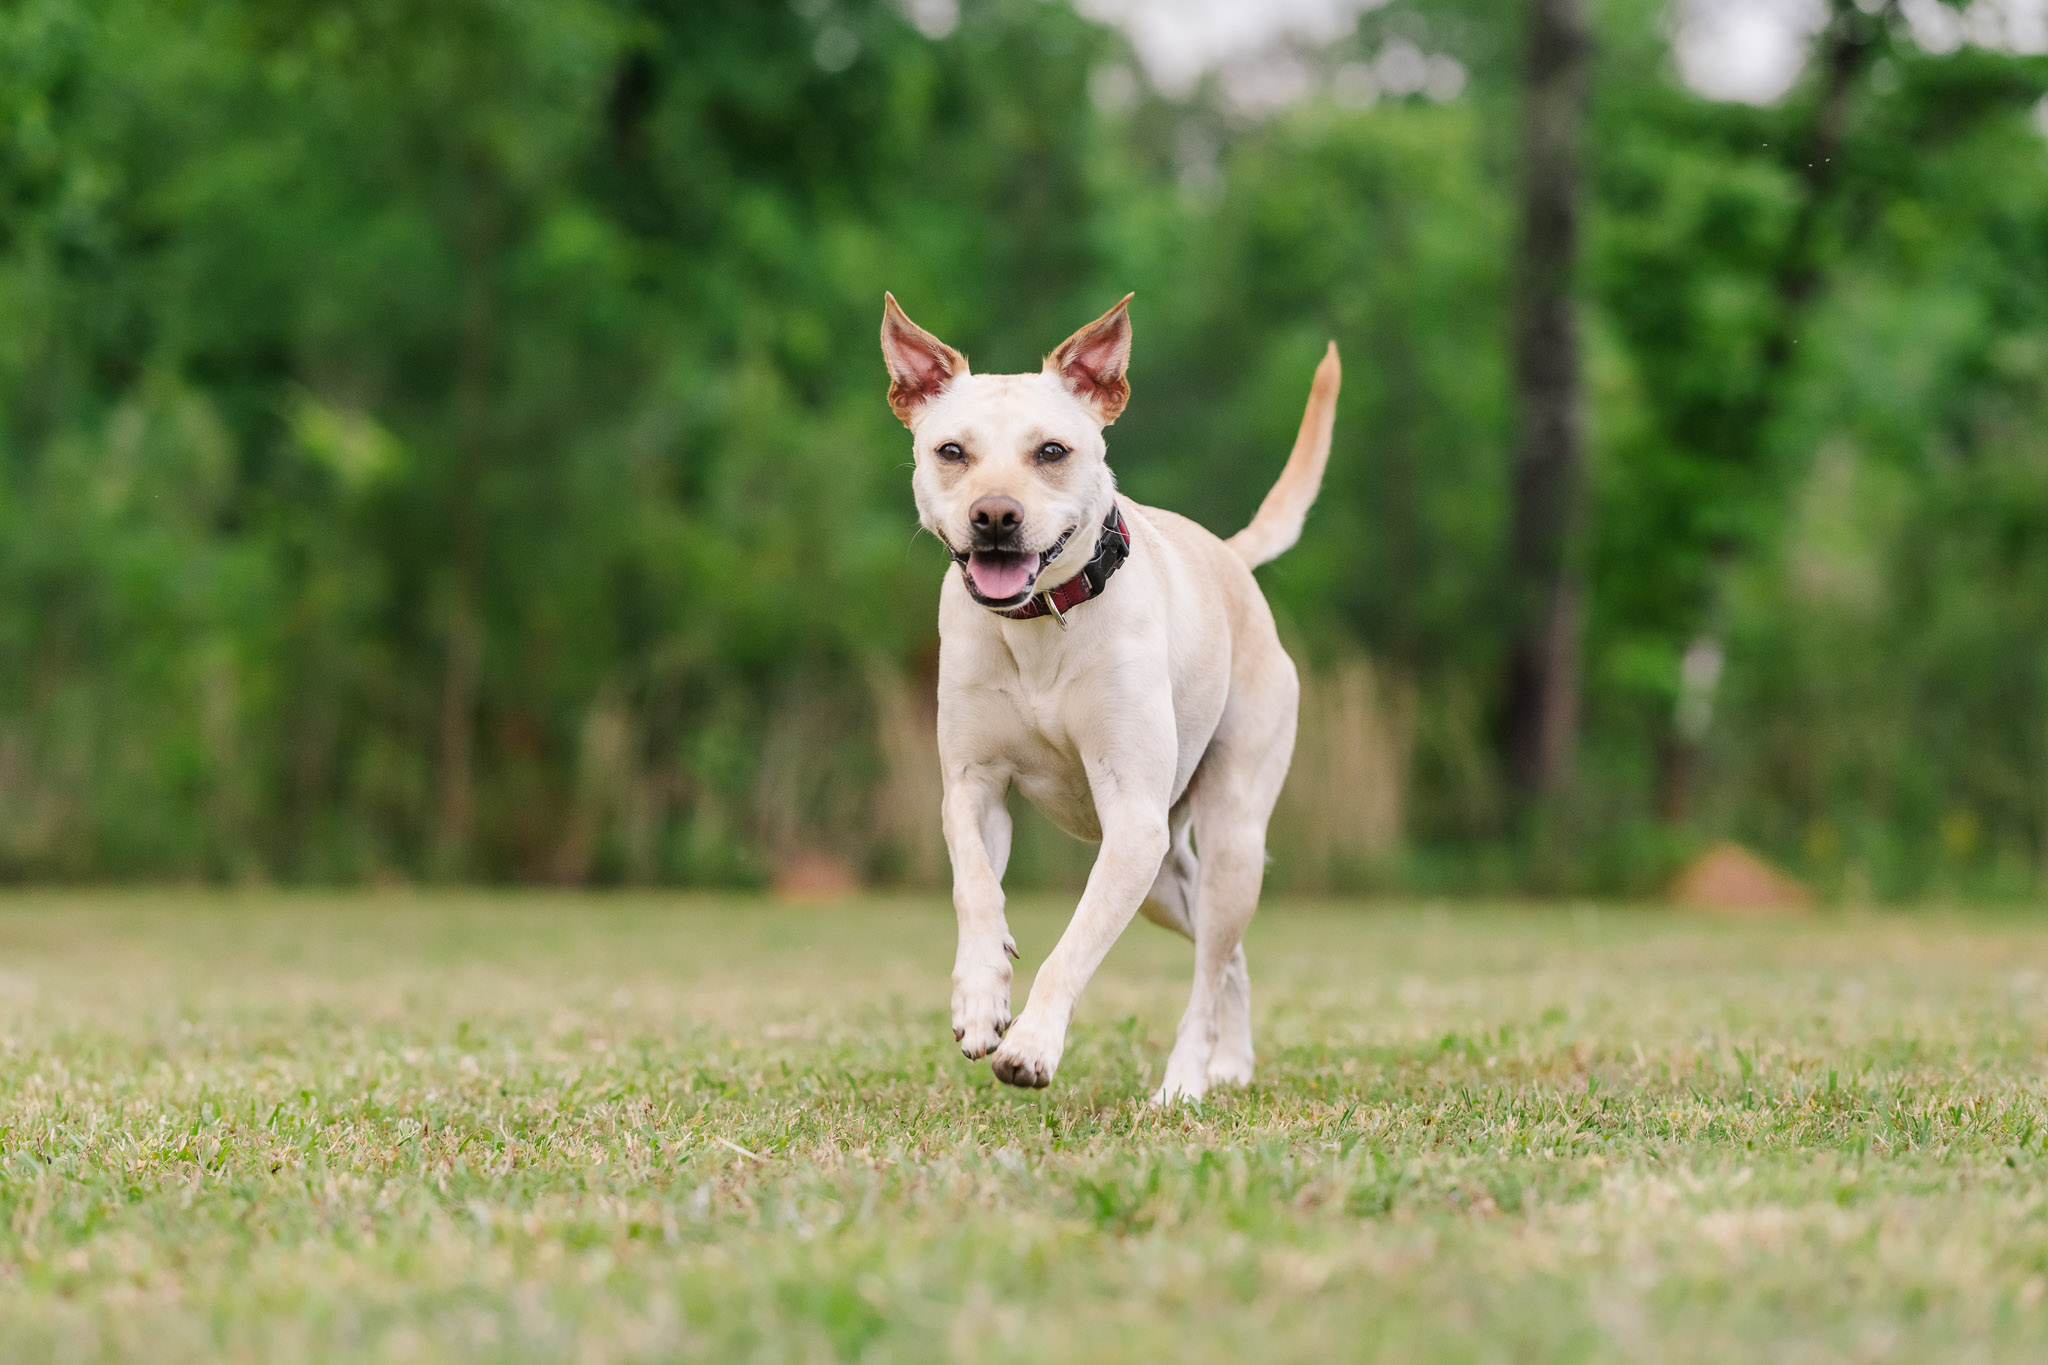 Action photos of dogs can be tricky to photograph without the help of a professional pet photographer.